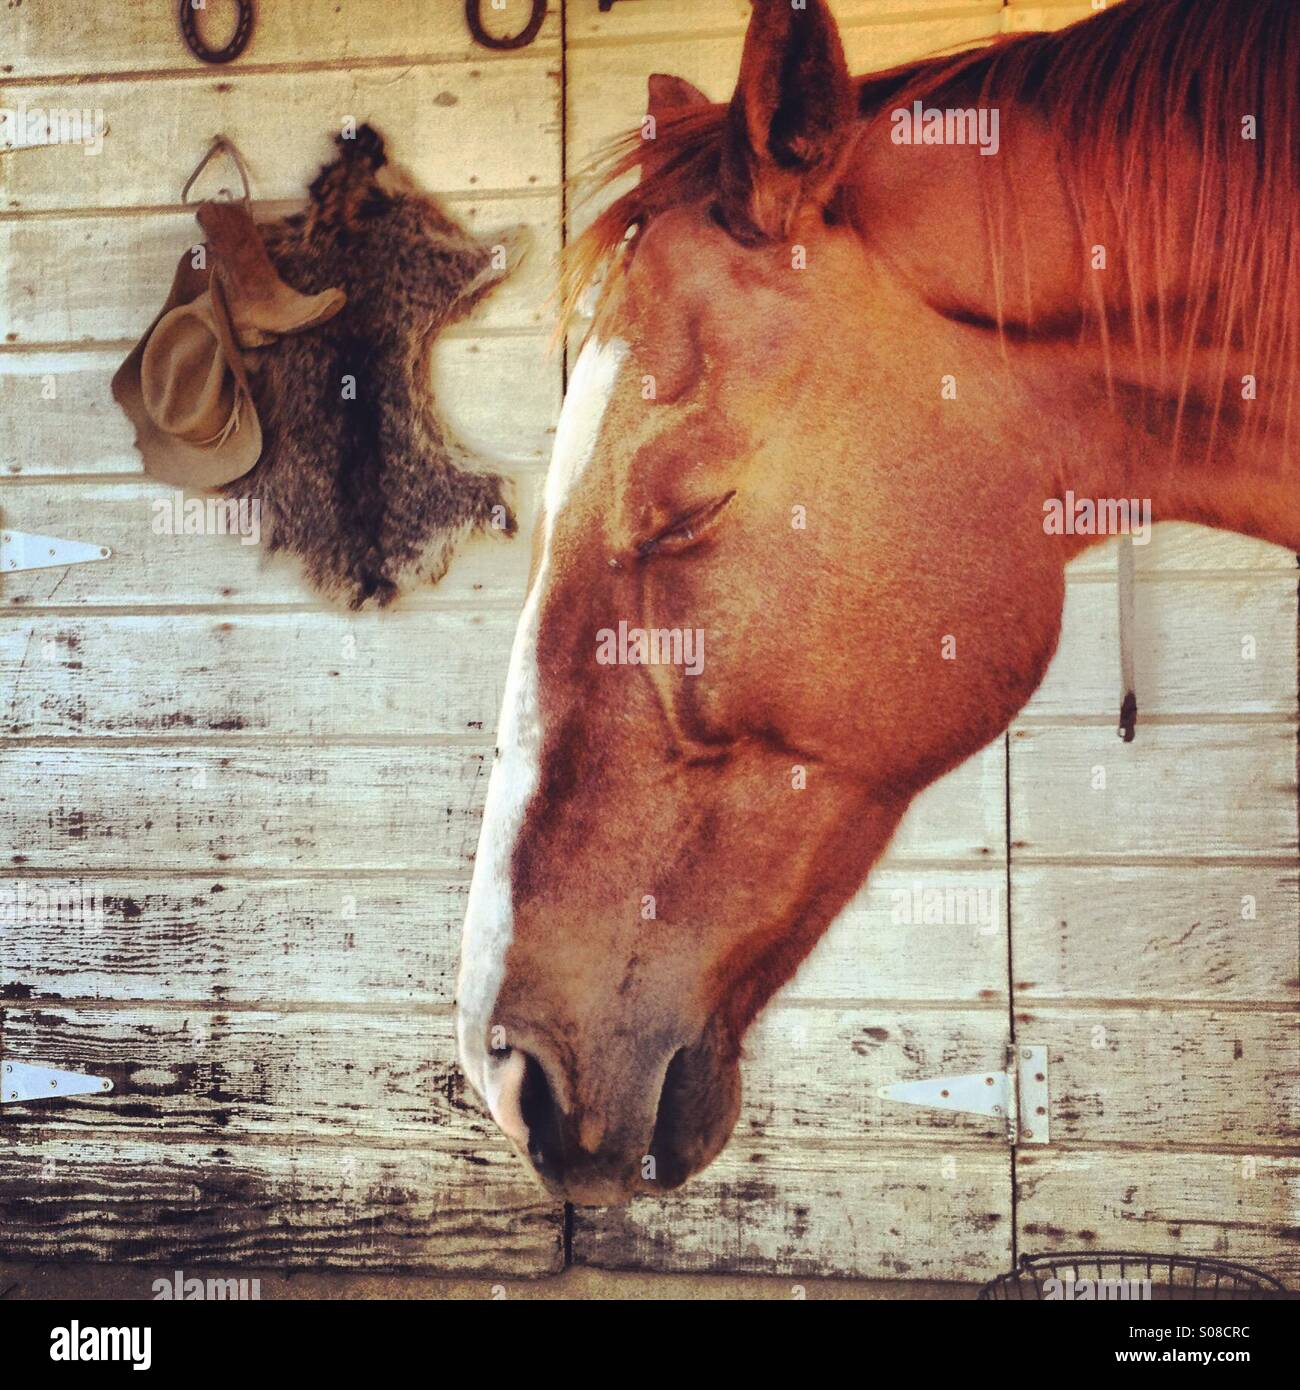 Horse with eyes closed basking in the sun. - Stock Image